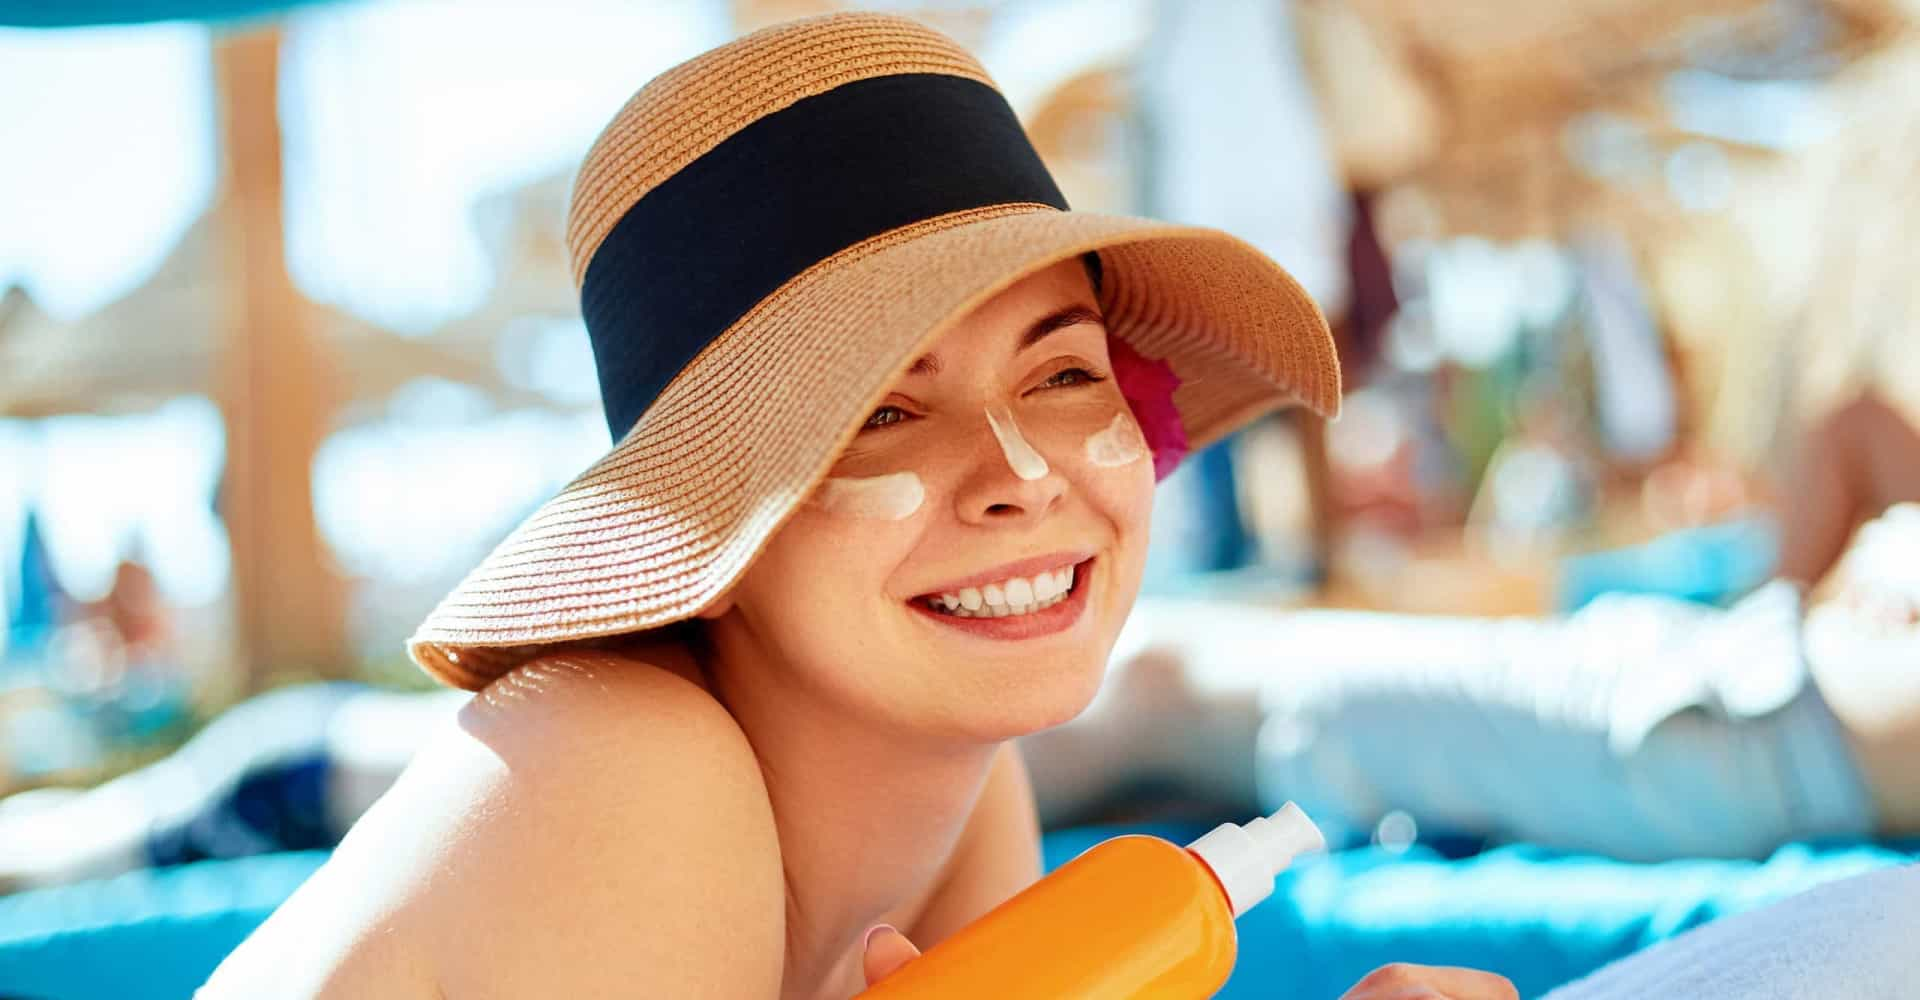 Surprising facts about sunscreen you need to know